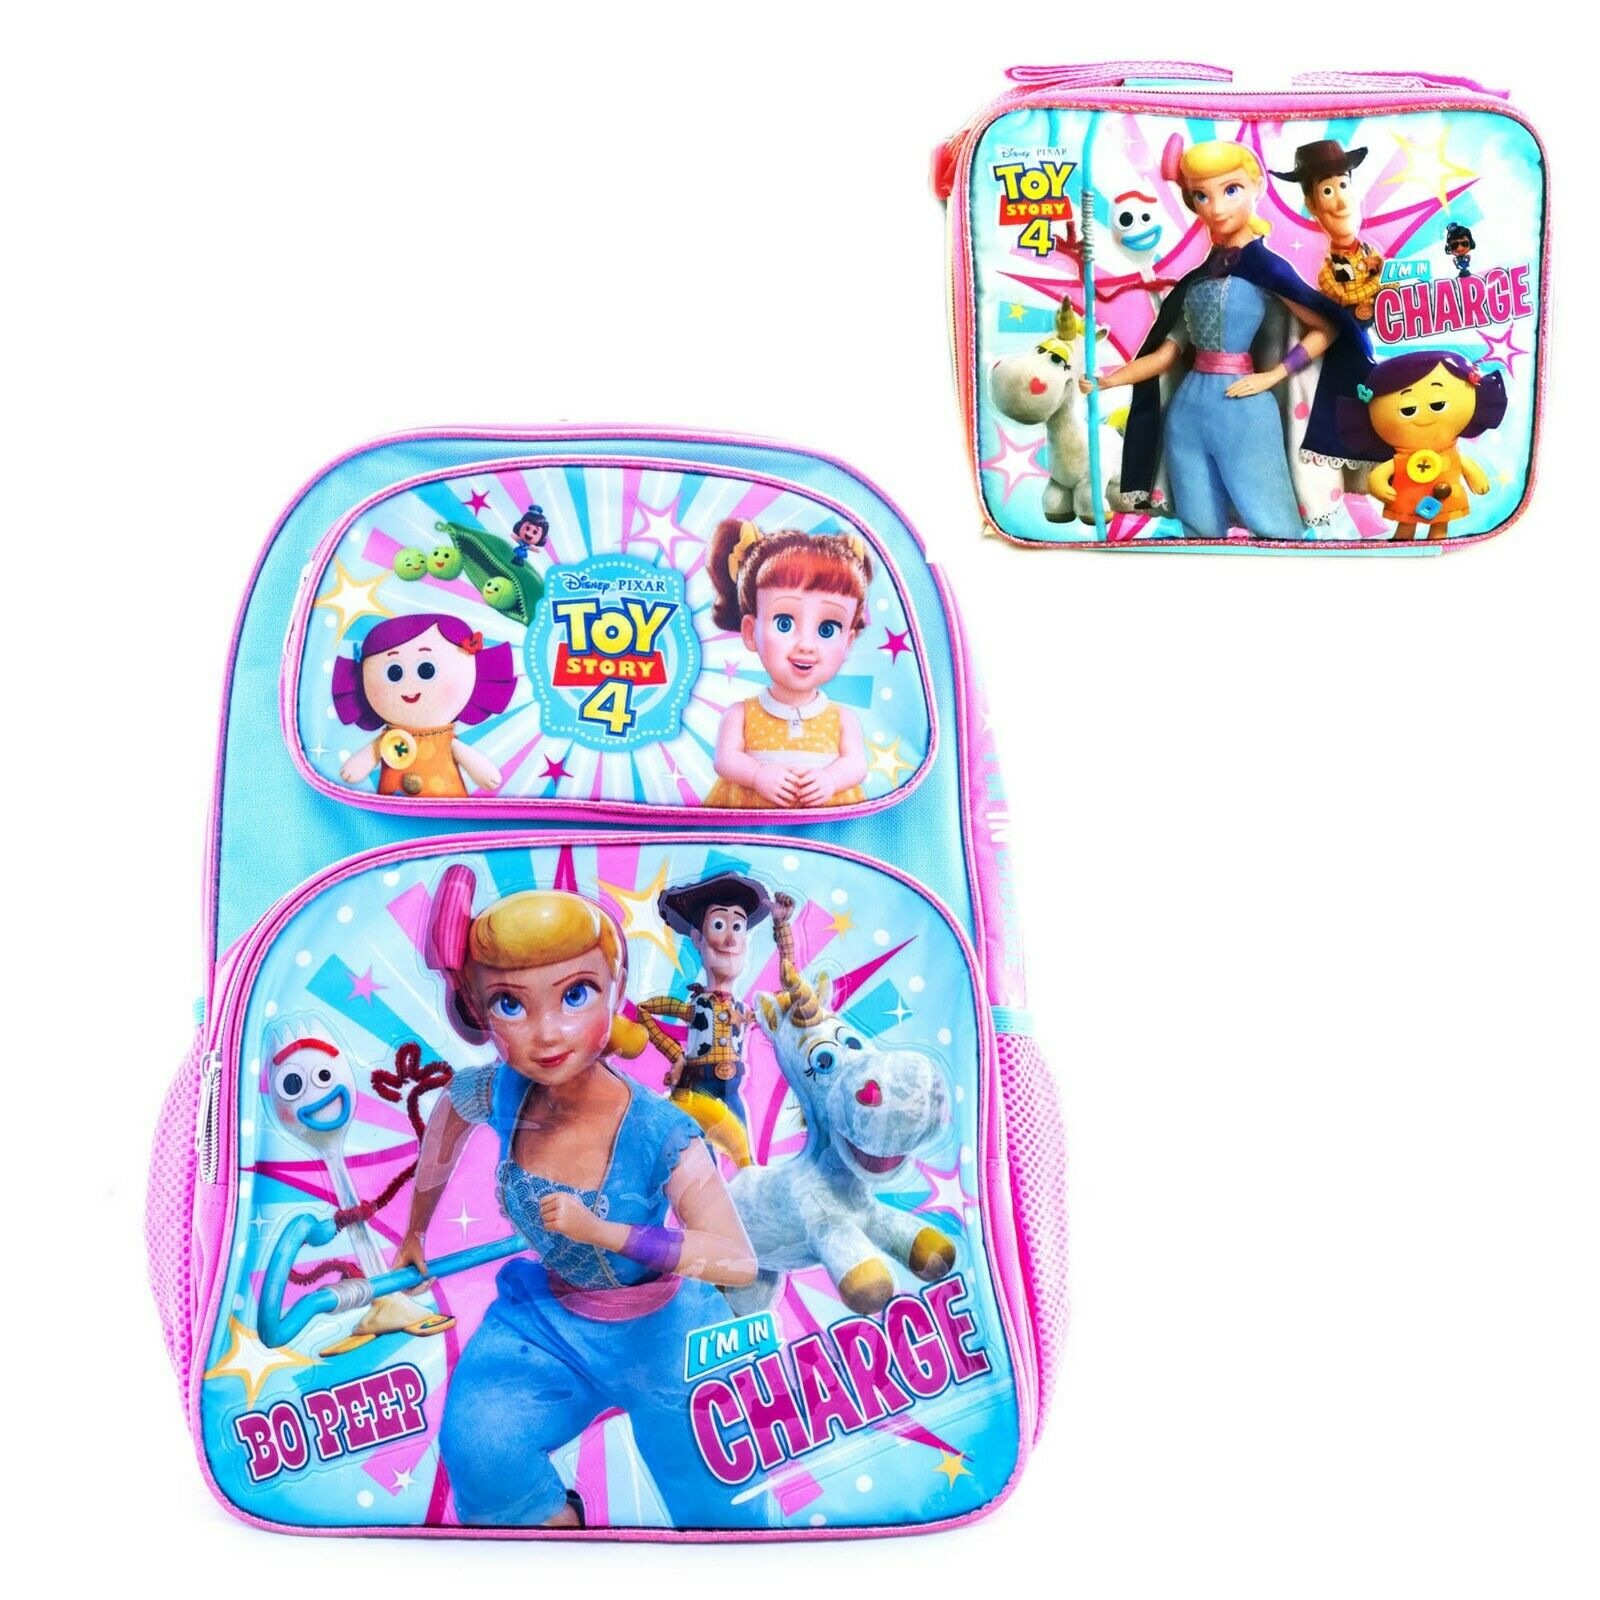 Toy Story 4 Backpacks, Lunch Box for Girls School Luggage Ba